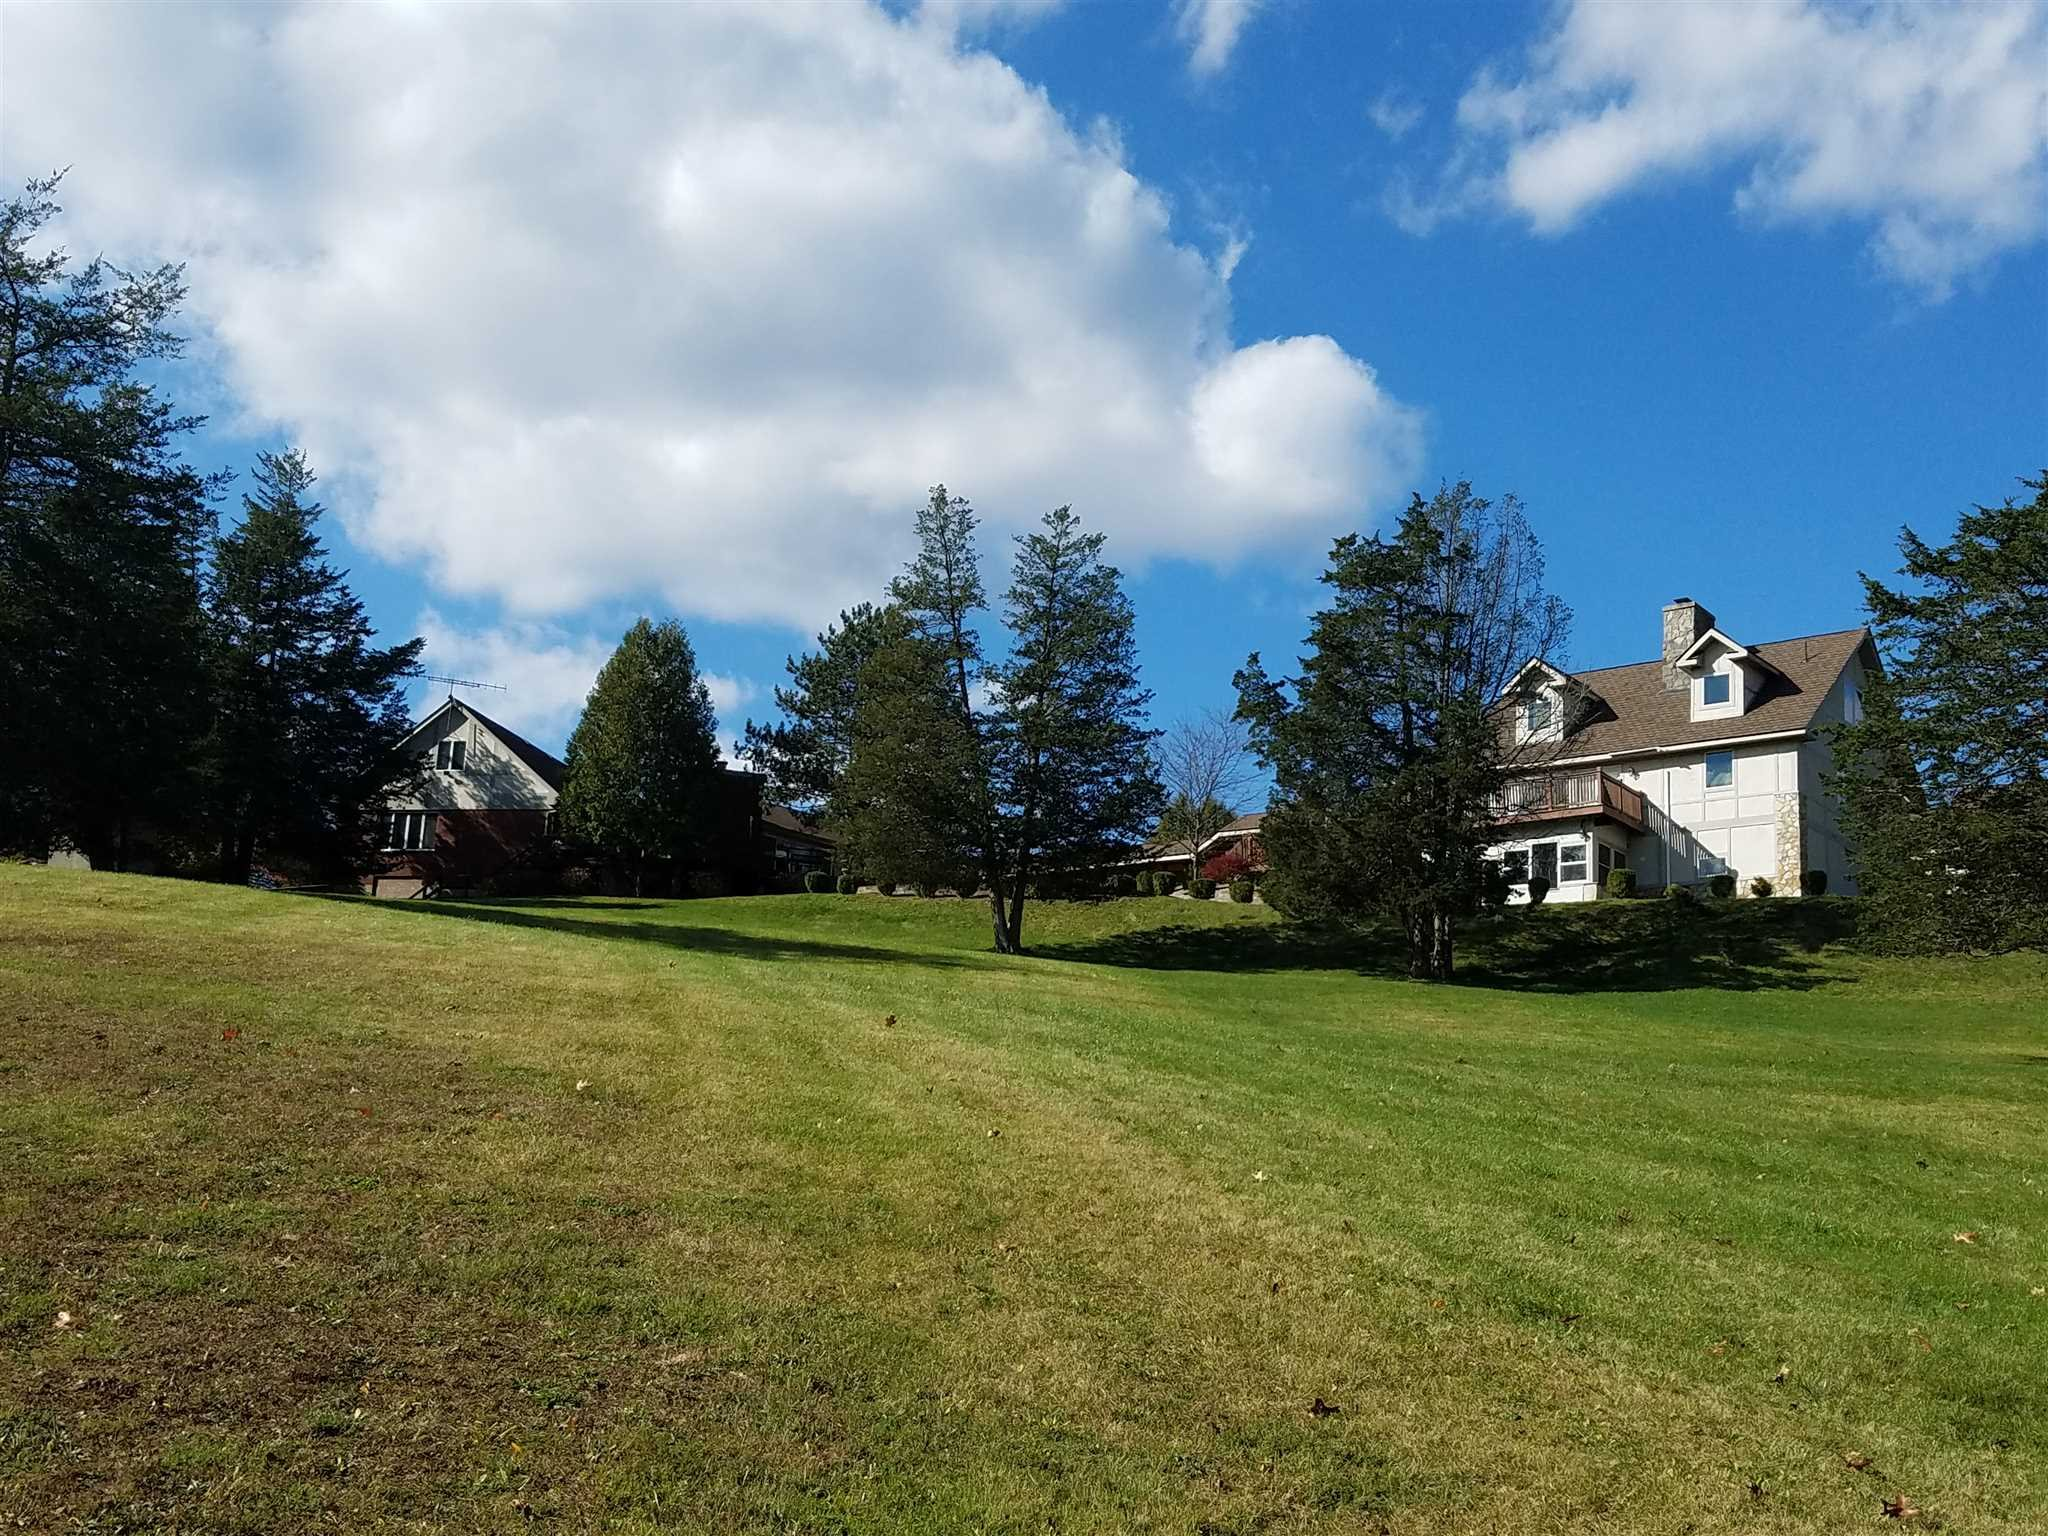 Single Family Home for Sale at 273 MILL Road 273 MILL Road Rhinebeck, New York 12572 United States